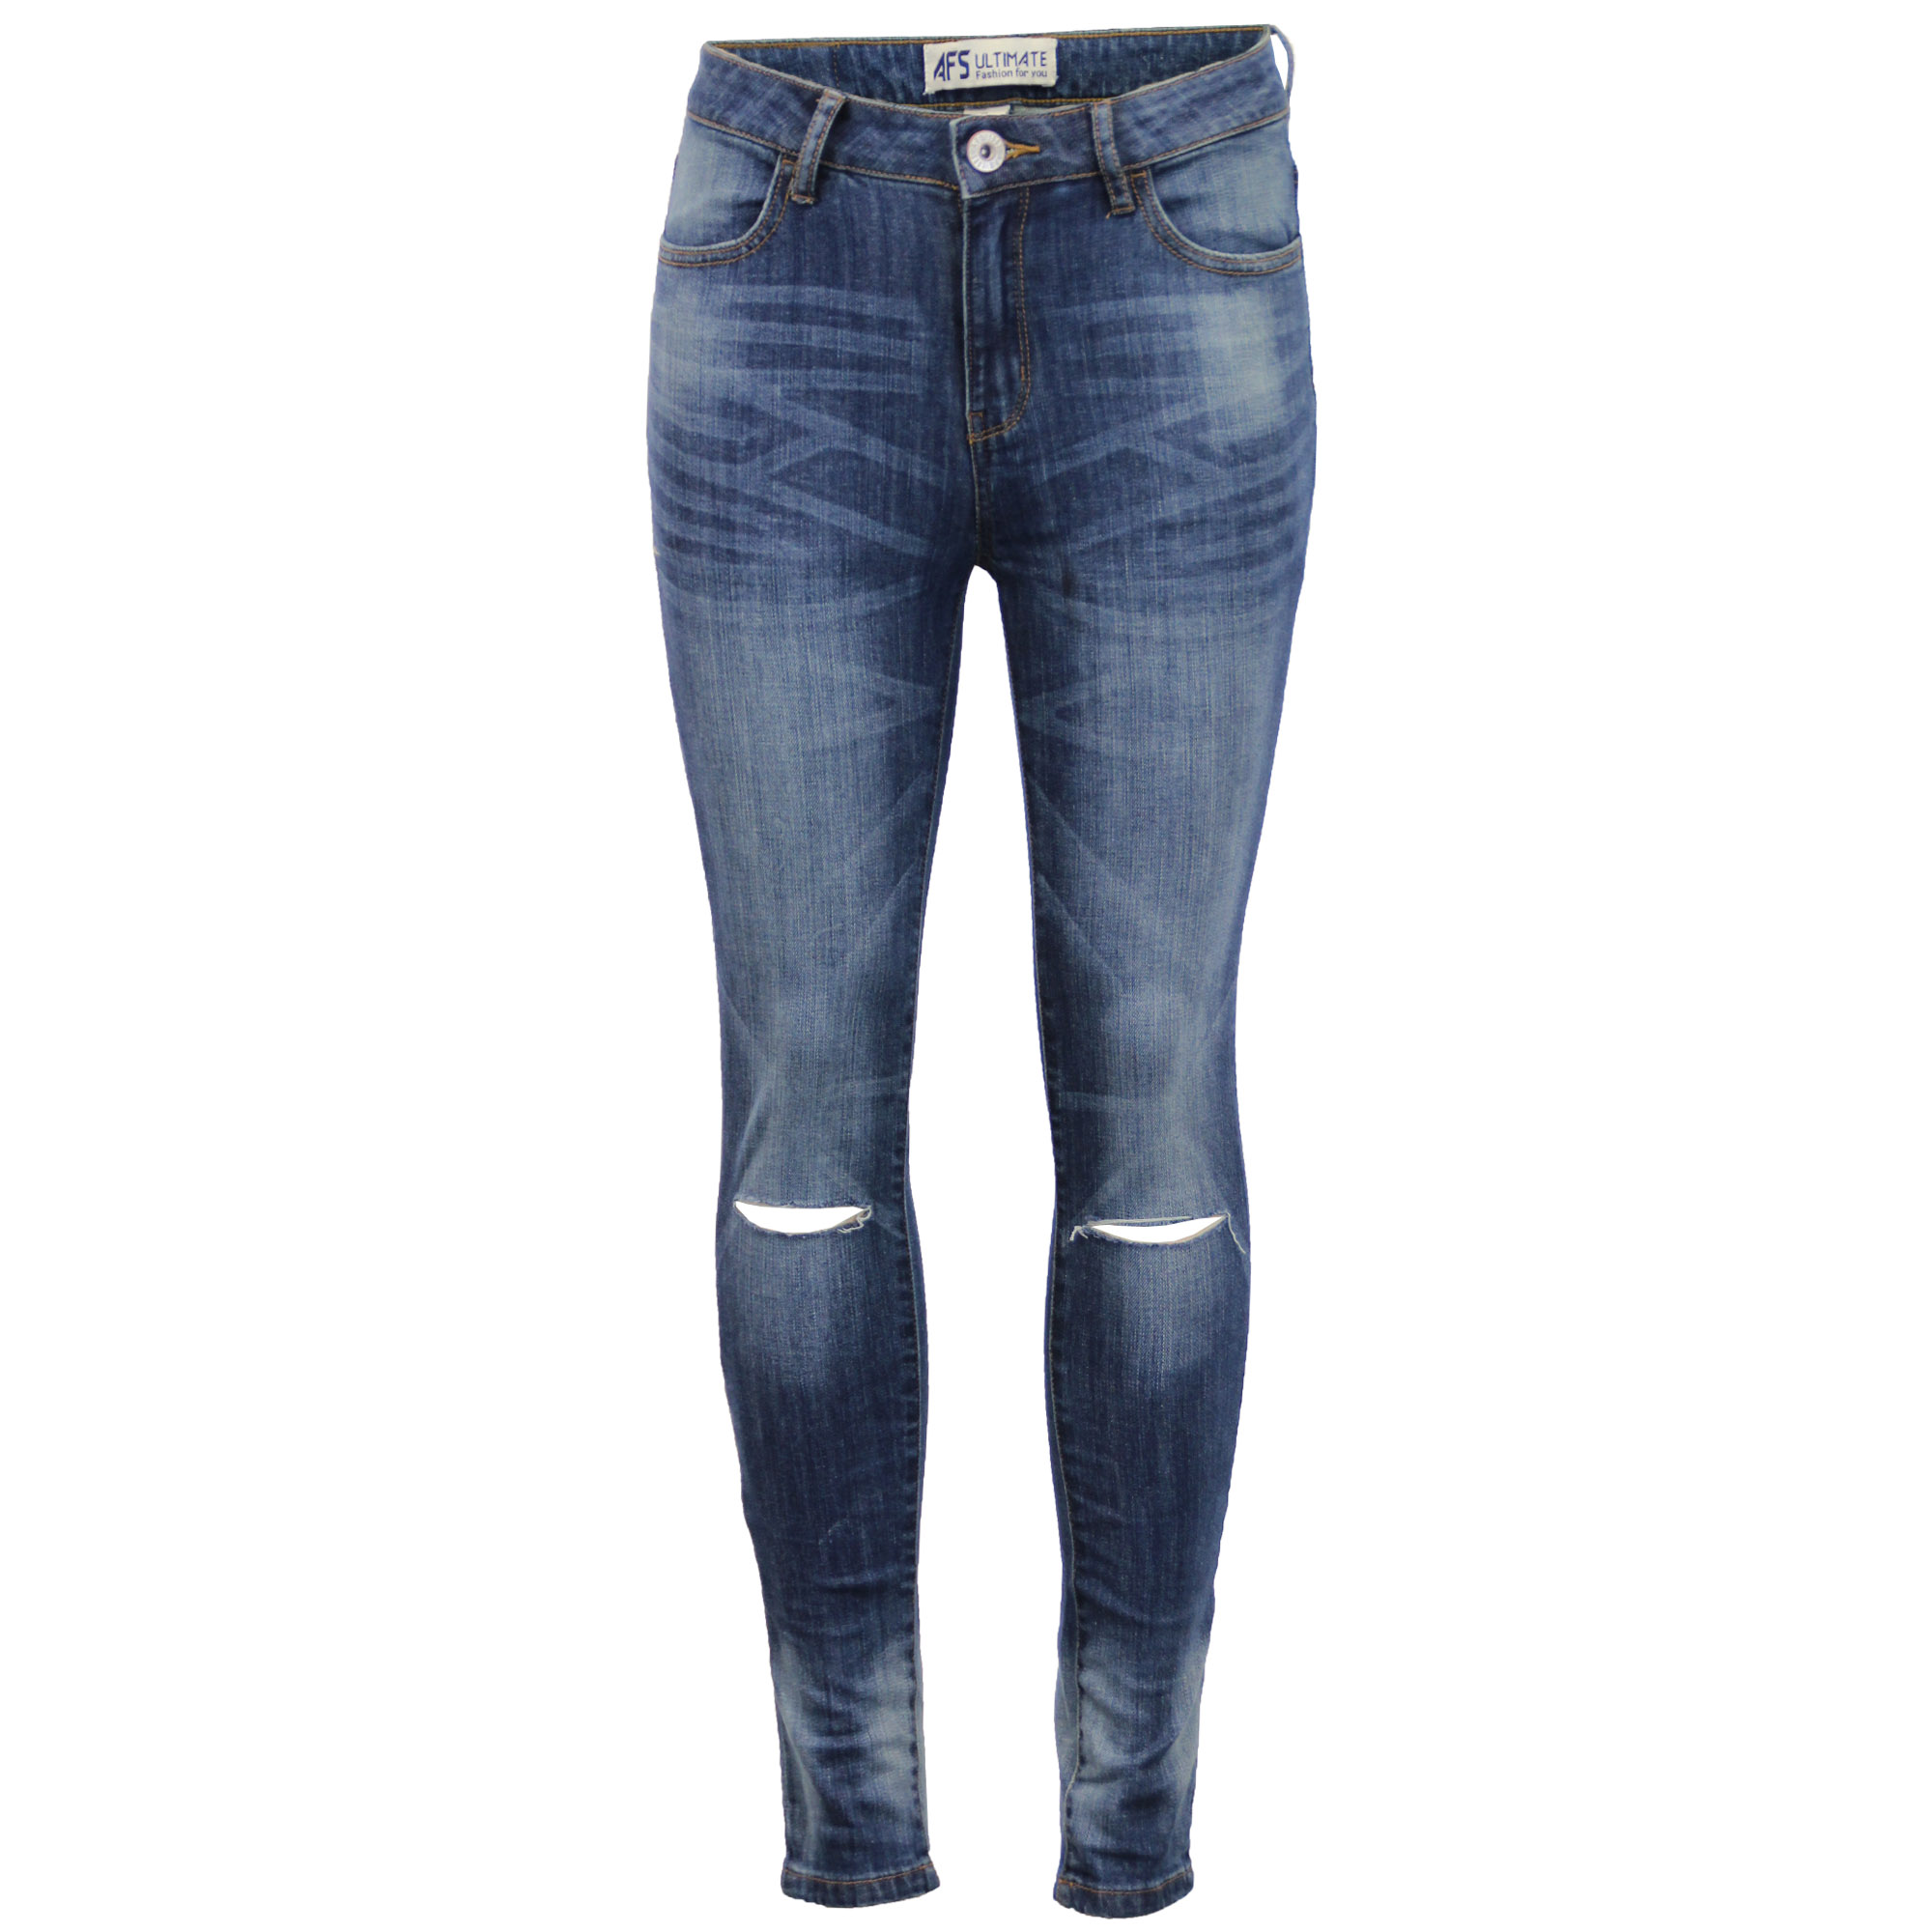 Cheap high waist ripped jeans, Buy Quality ripped jeans for women directly from China designer jeans for women Suppliers: New Designer Denim Women High Waist Ripped Jeans for Women Skinny Black White Jeans Woman Elastic Slim Jean Female Femme 50 Enjoy Free Shipping Worldwide! Limited Time Sale Easy Return/5(54).